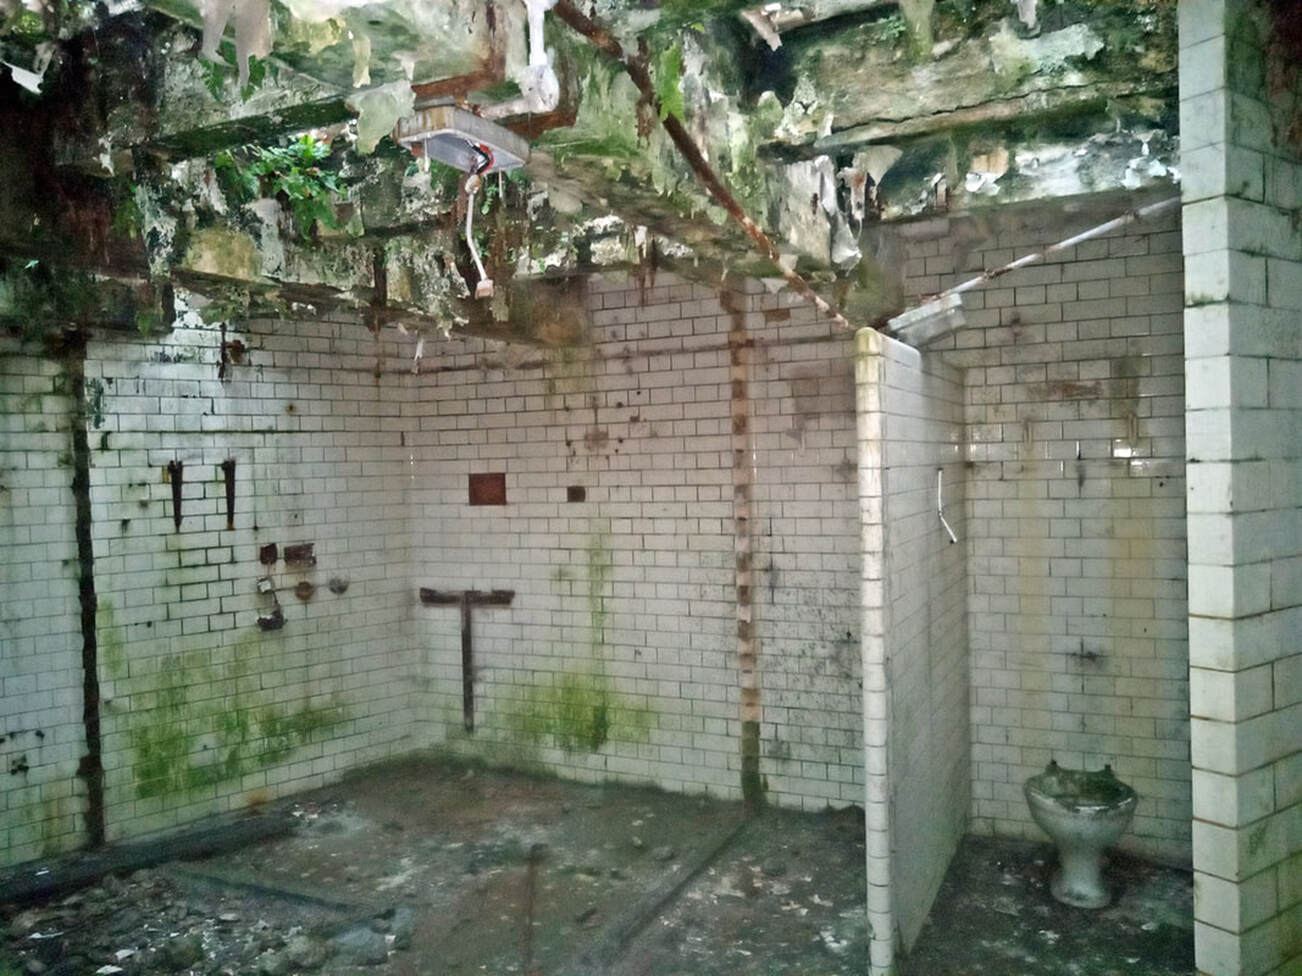 Picture of derelict London public toilets disused for several decades